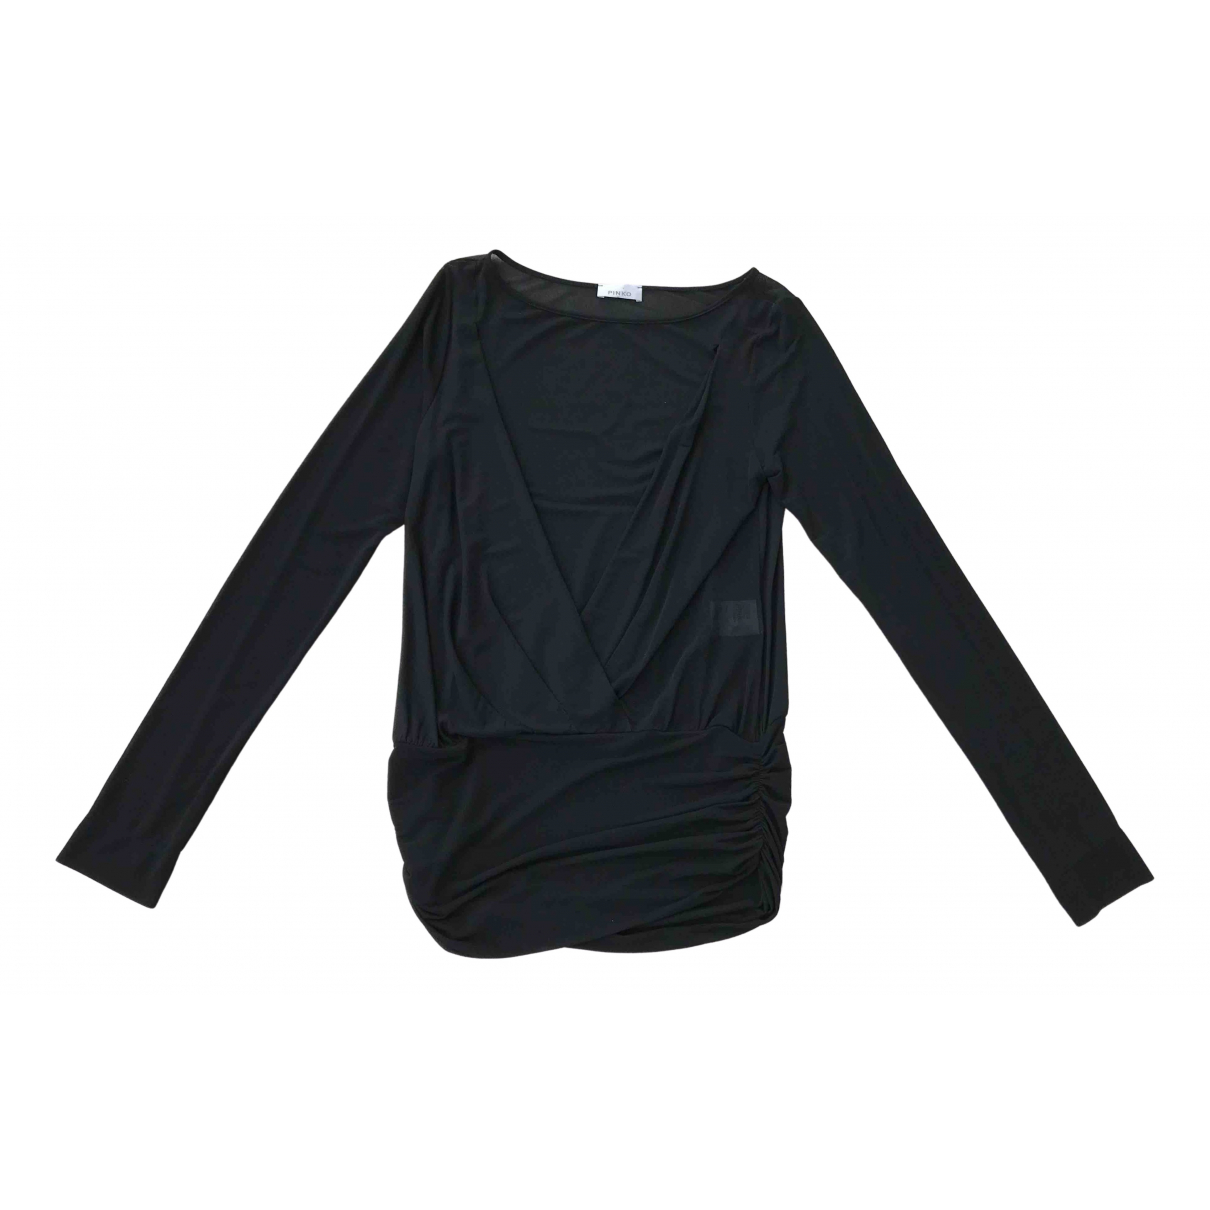 Pinko \N Black  top for Women L International